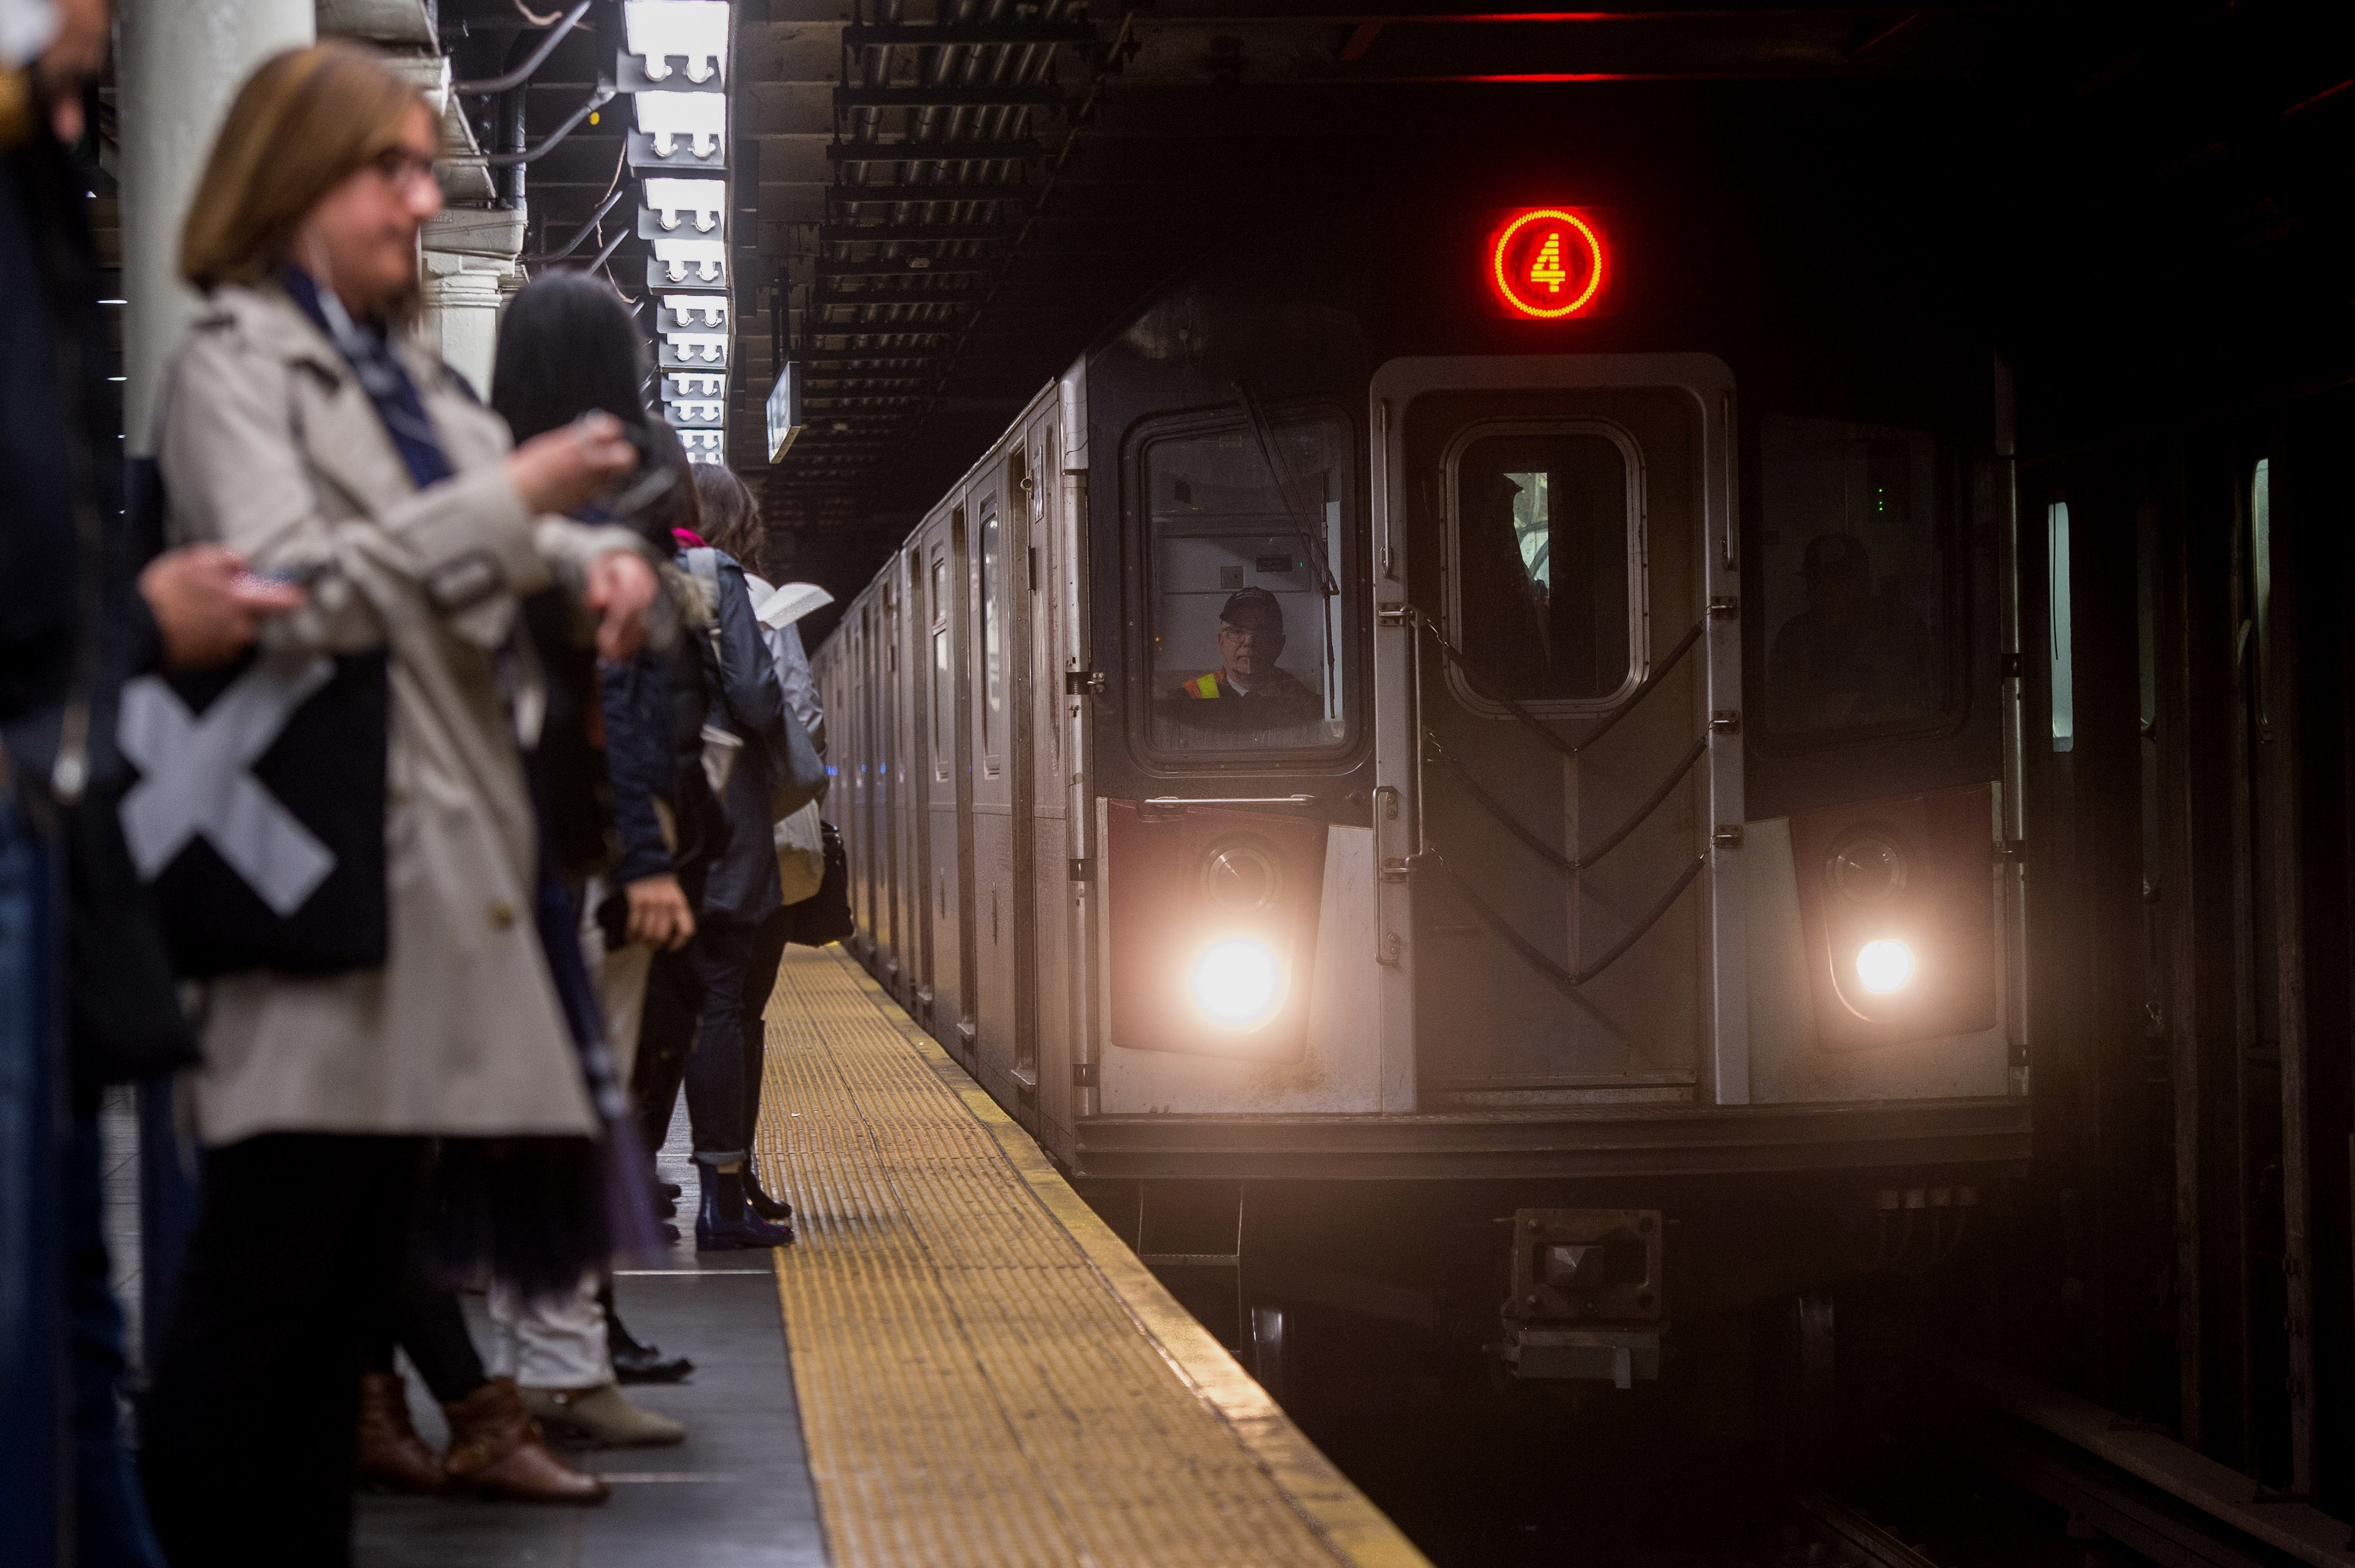 Inside The New York City Subway System As MTA Increases Fares